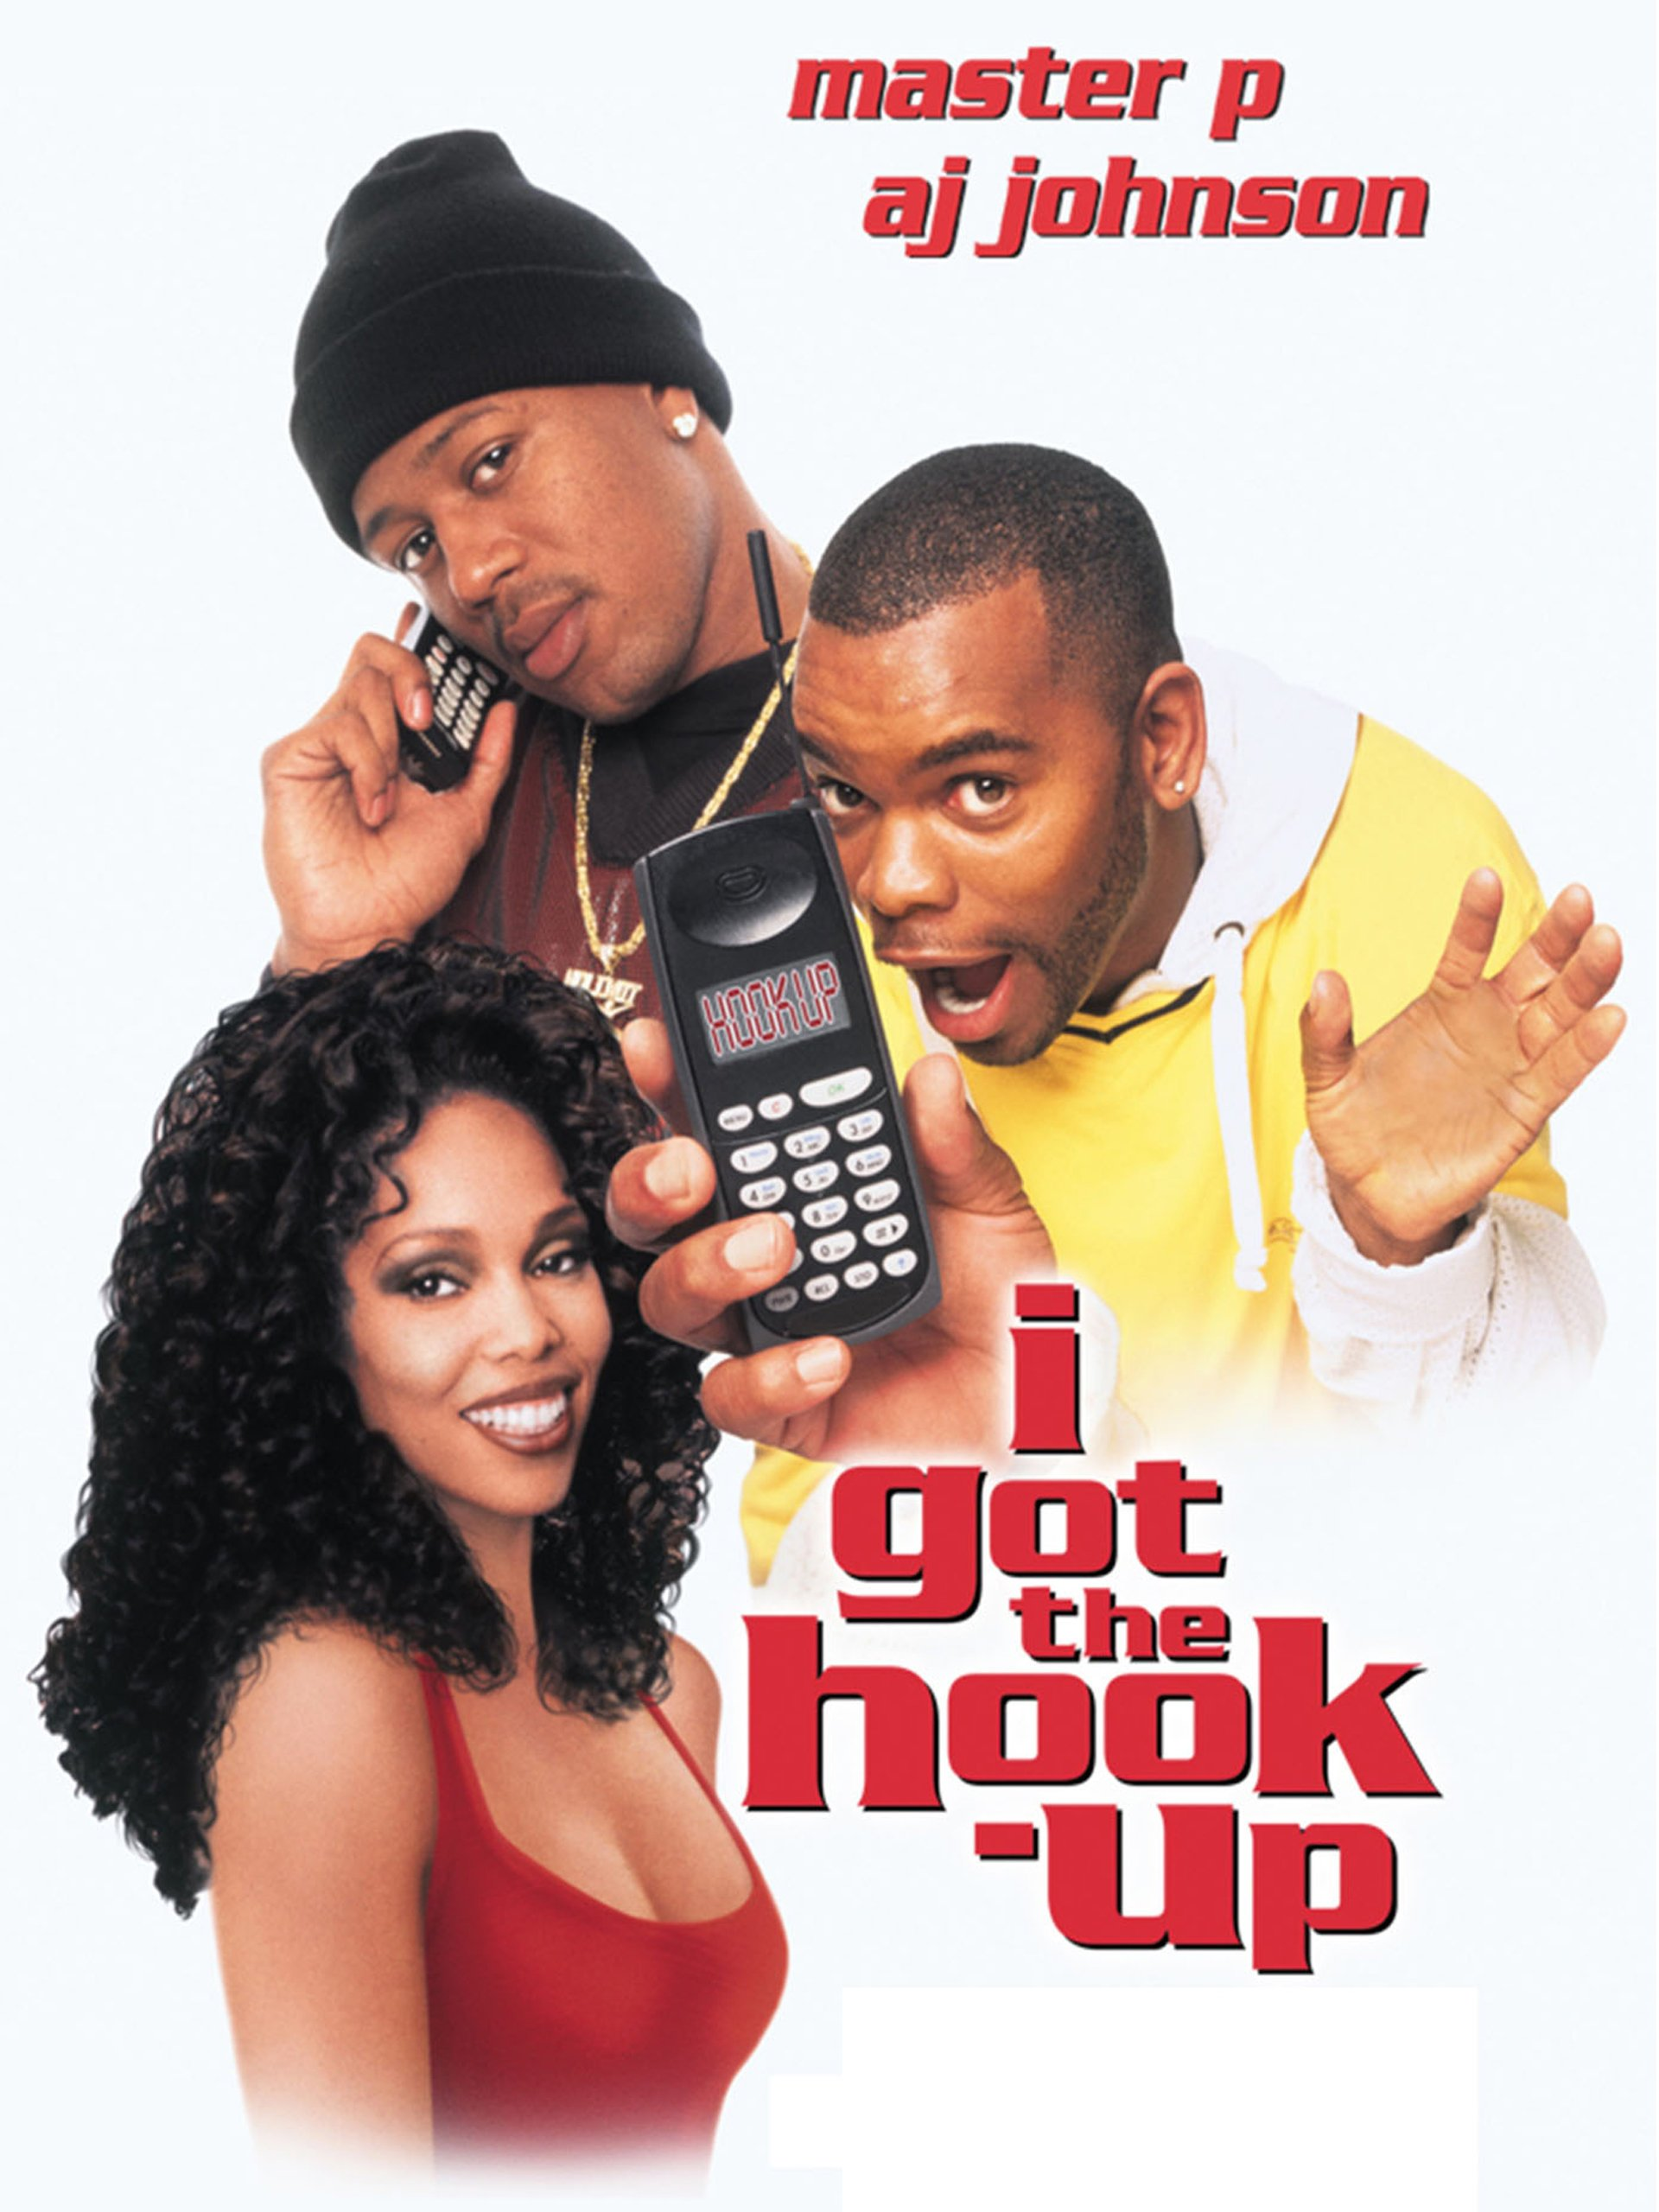 watch i got the hook up 123movies